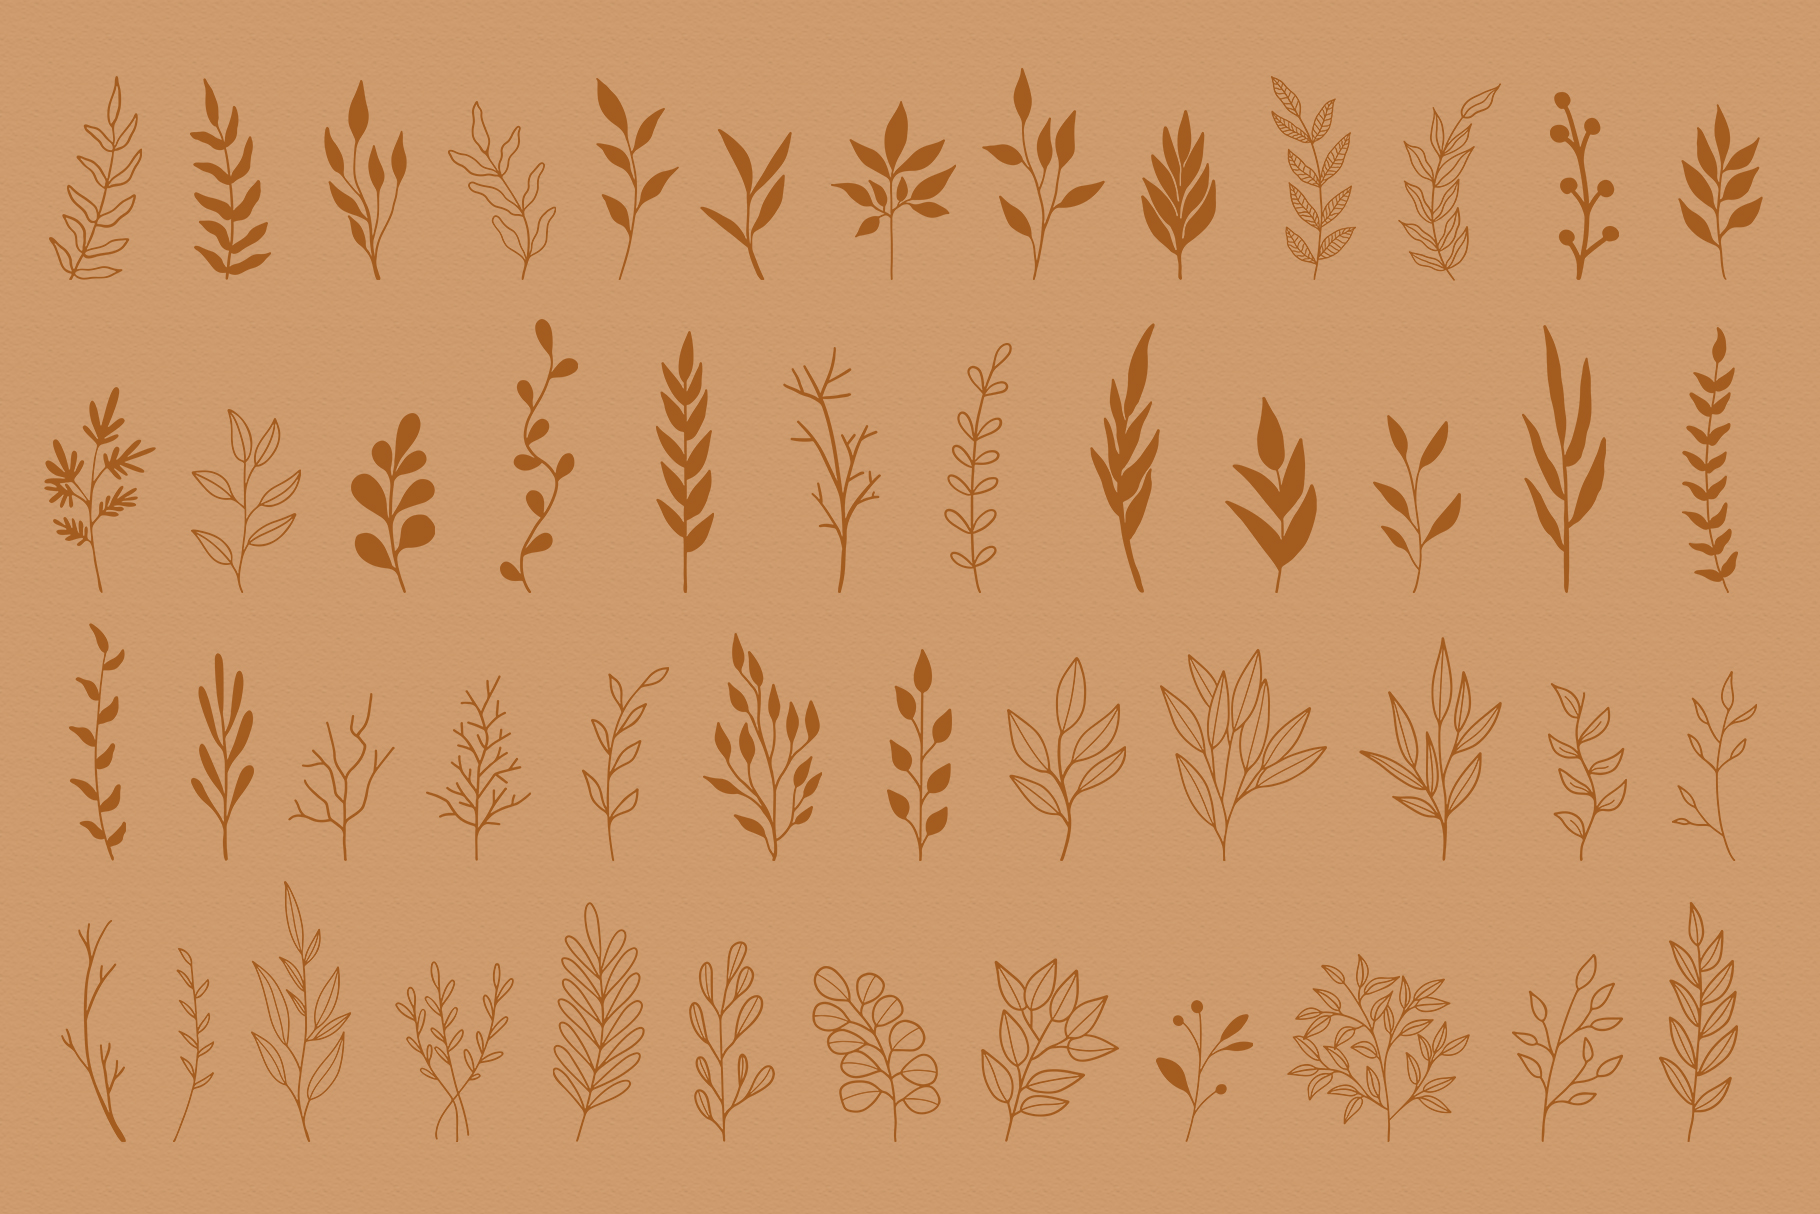 Floral Vector Elements Volume 002 example image 7